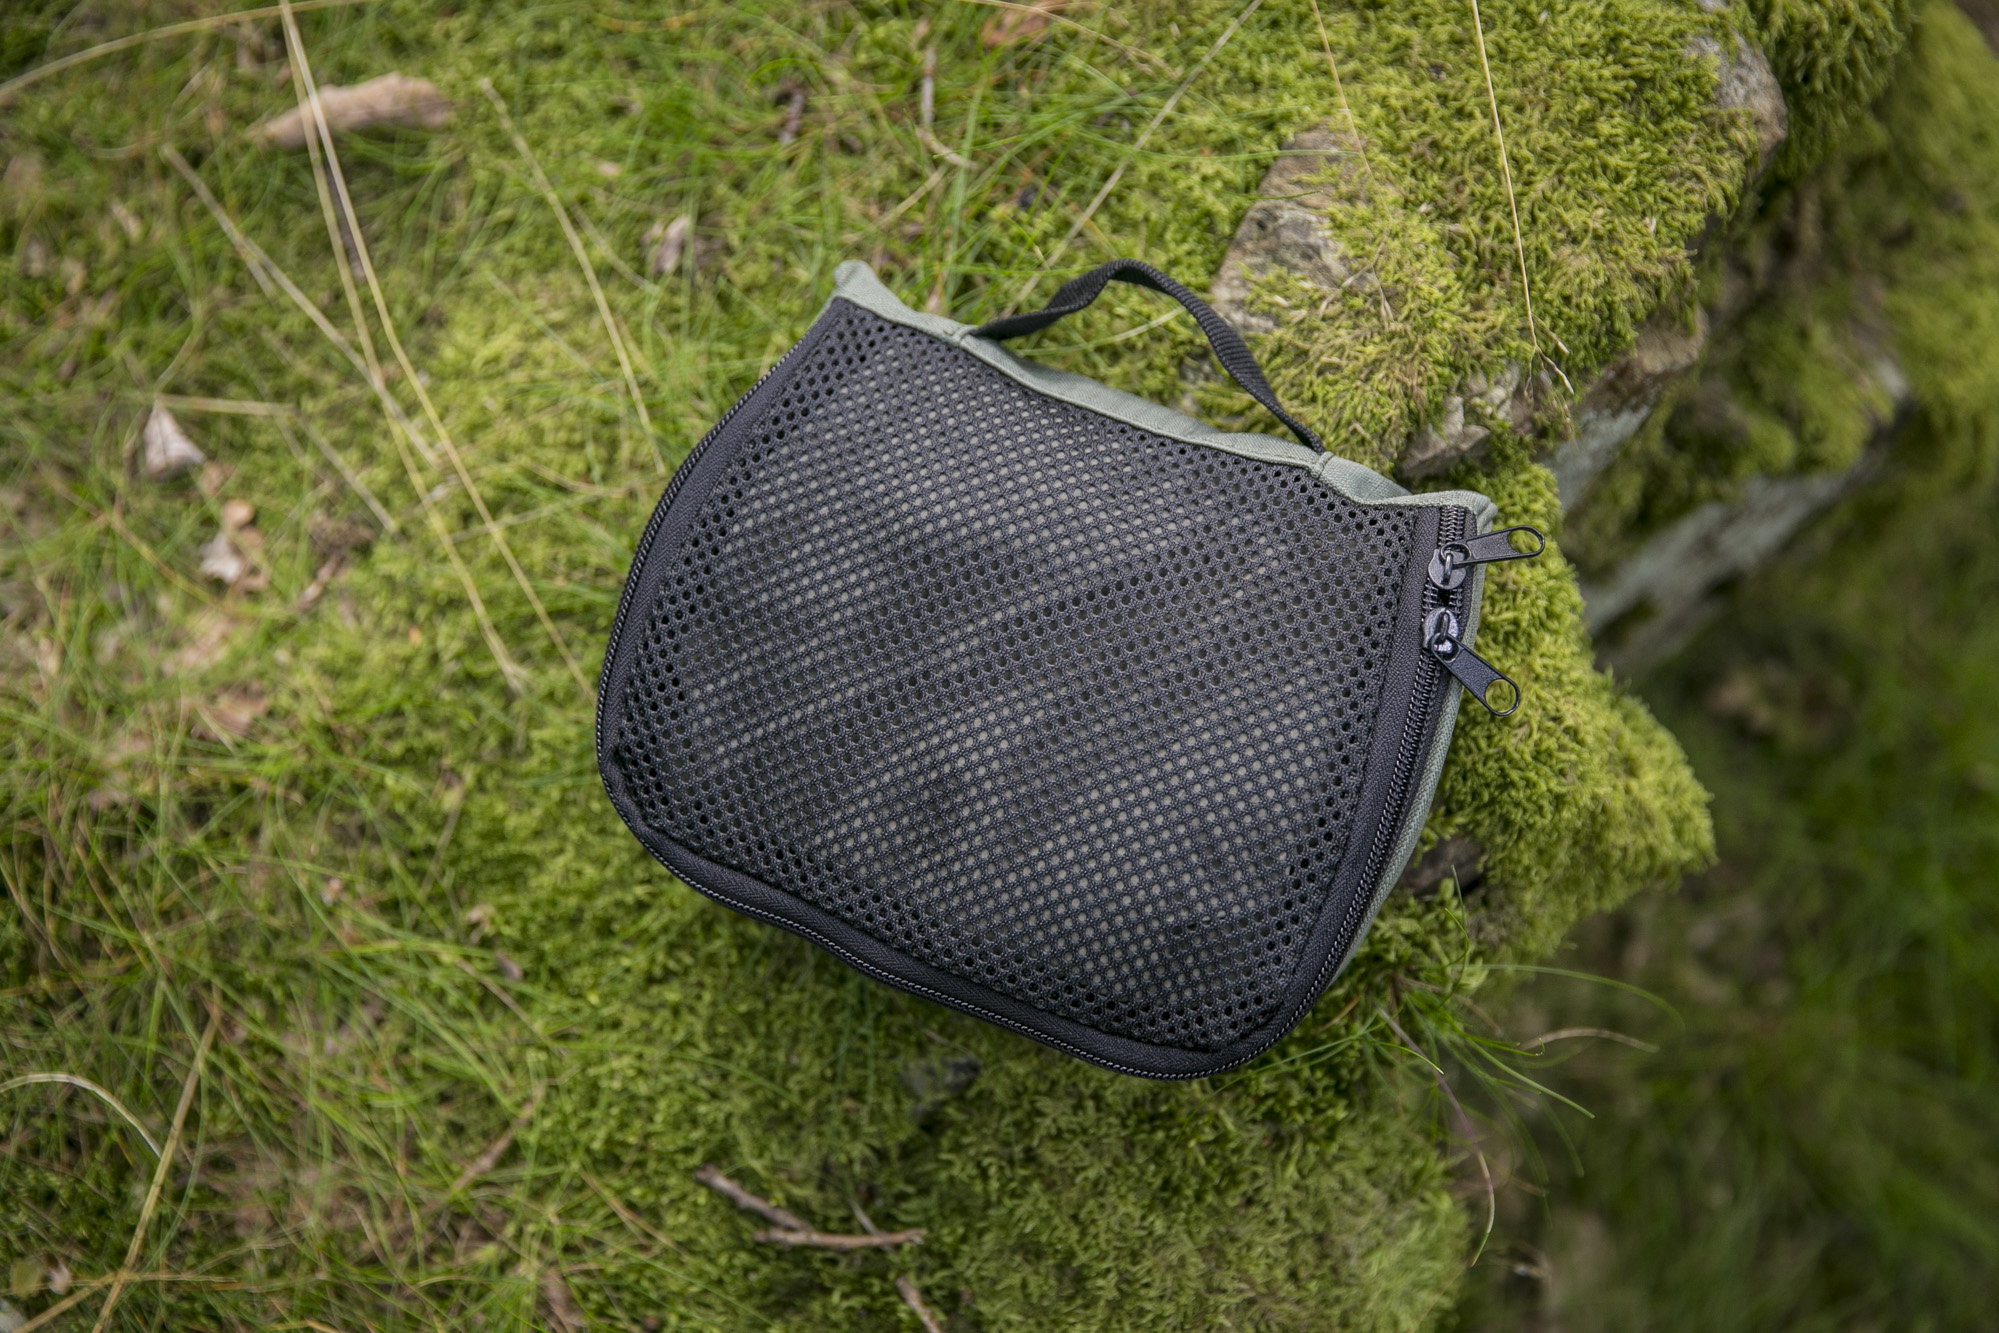 snugpak-jungle-hammock-01